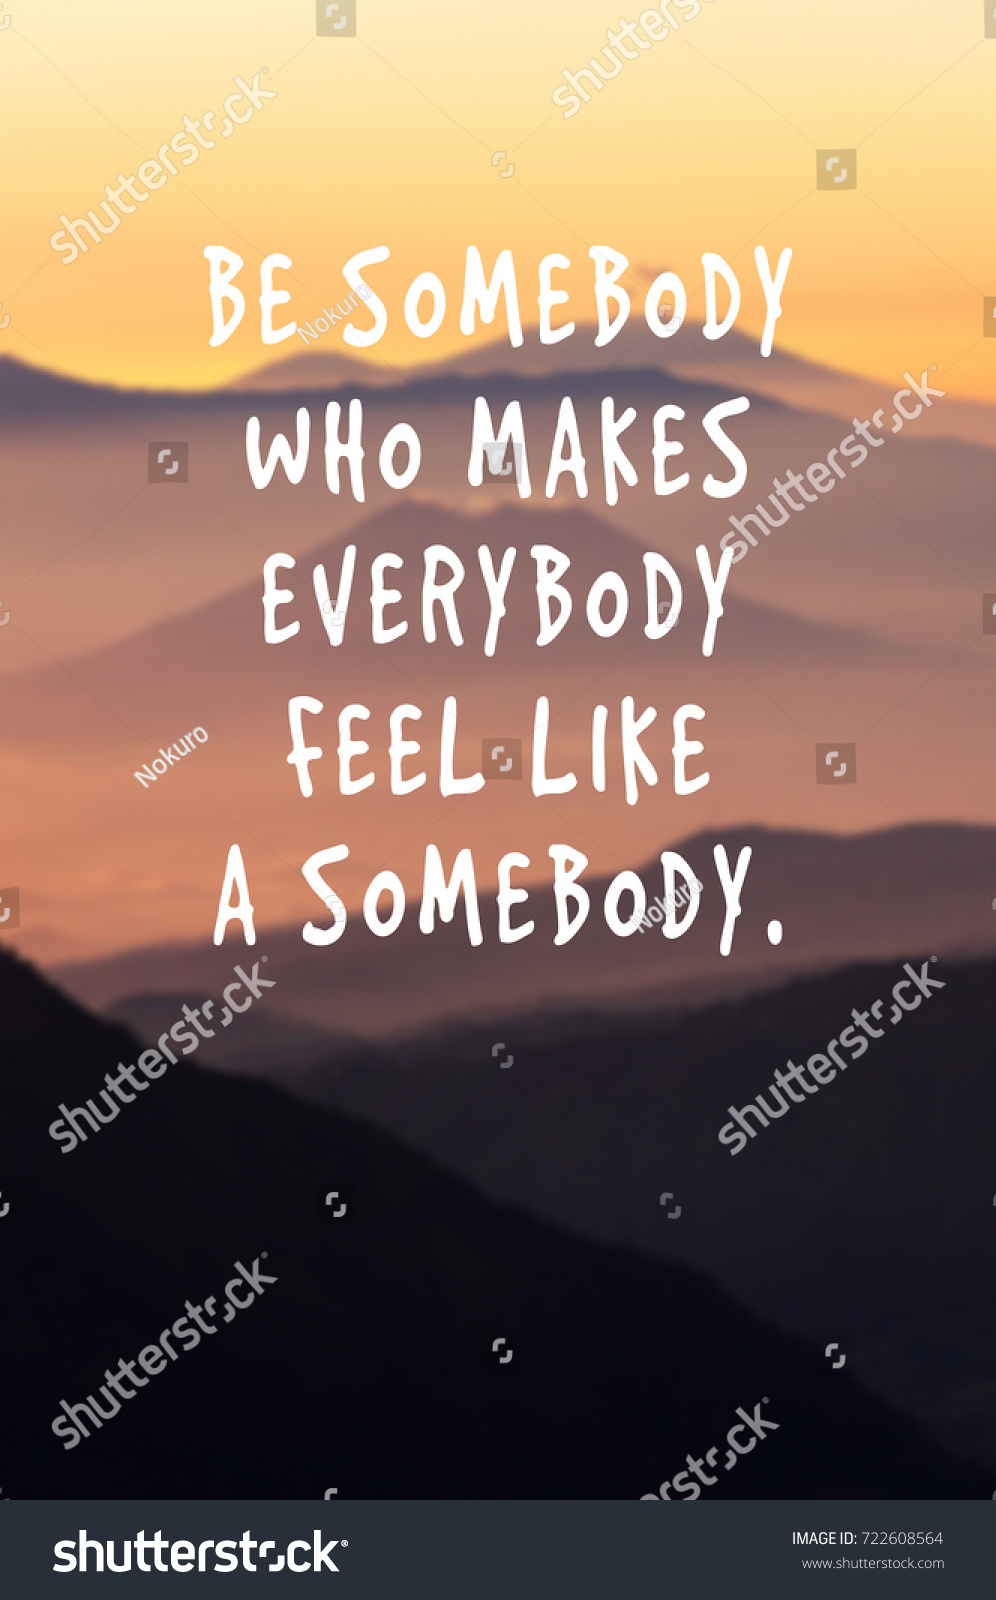 Motivational Inspirational Quotes About Life Life Motivational Inspirational Quotes Be Somebody Stock Photo